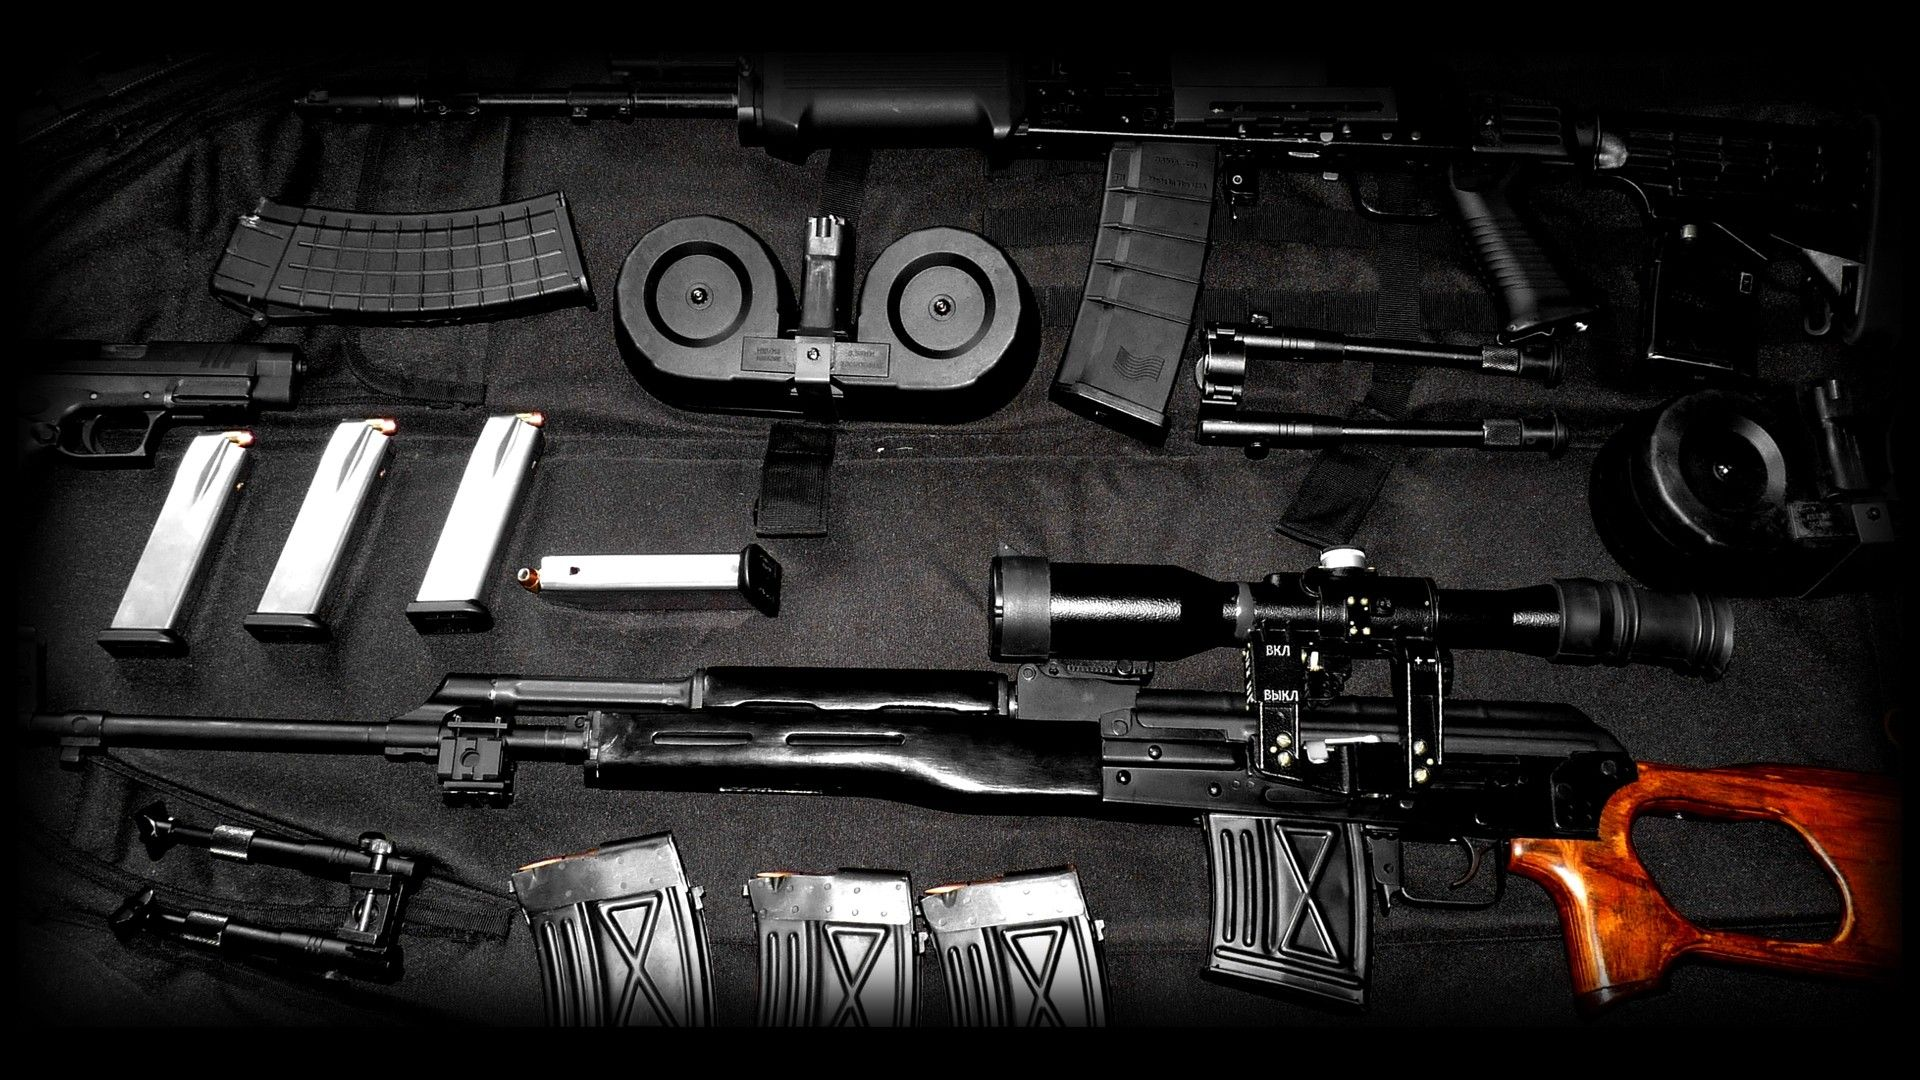 Download The AK47 And Dragunov Wallpaper IPhone